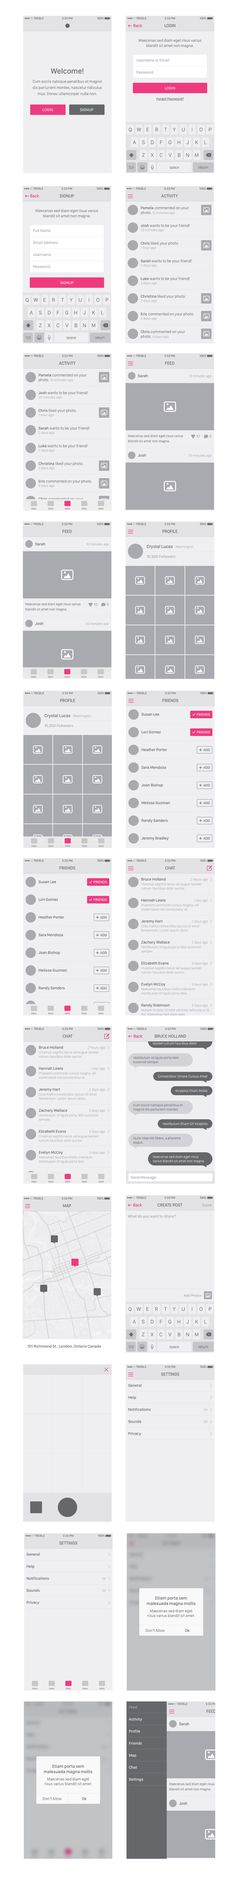 Snap: iOS 8 UI Wireframe Kit | GraphicsFuel | Premium & Free Graphic & Web Design Resources!